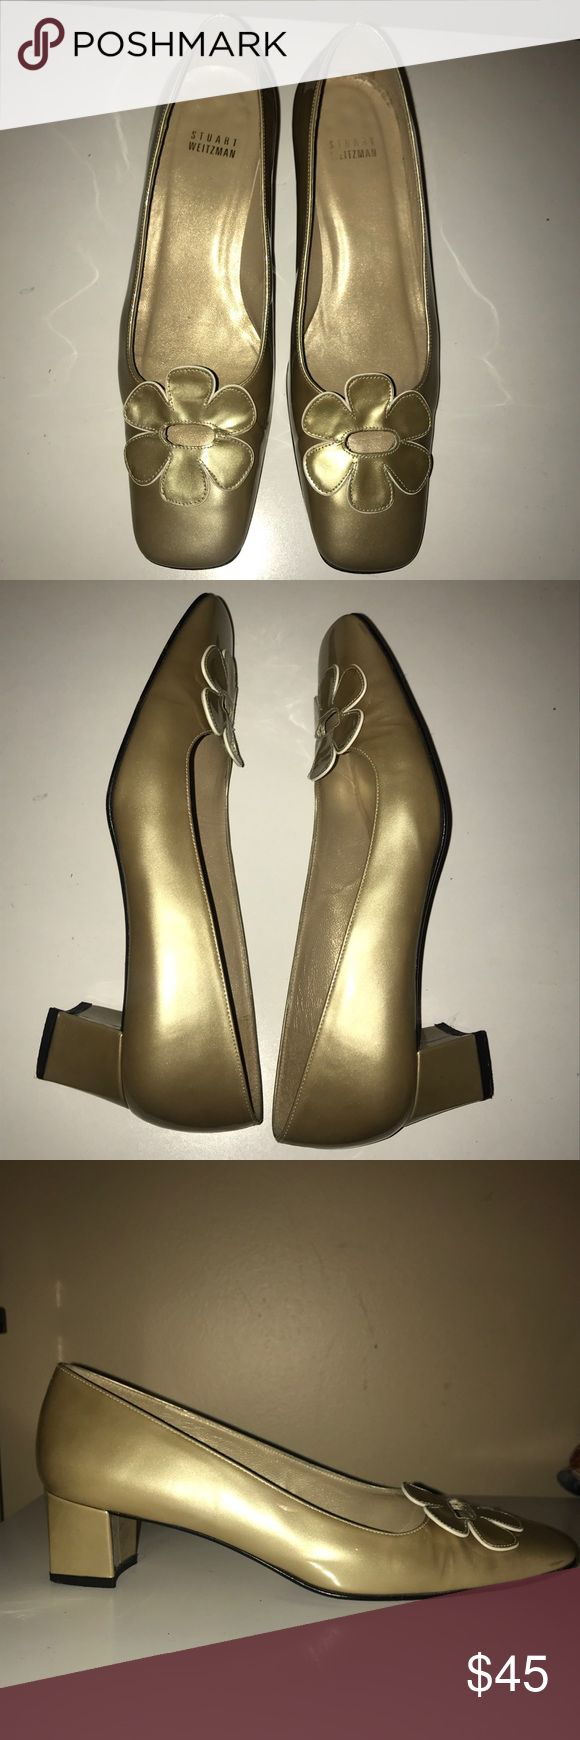 """💜STUART WEITZMAN💜Gold shimmer Patent Leather 💜STUART WEITZMAN💜Gold shimmer Patent Leather Square Toe Pumps/ Heels.  Size- 7.5M. Heel height- 1.5"""".   Original cost $395. Great pre-loved condition. PLEASE NOTE: Slight Knick in the back on one heel.. See last photo Stuart Weitzman Shoes Heels"""